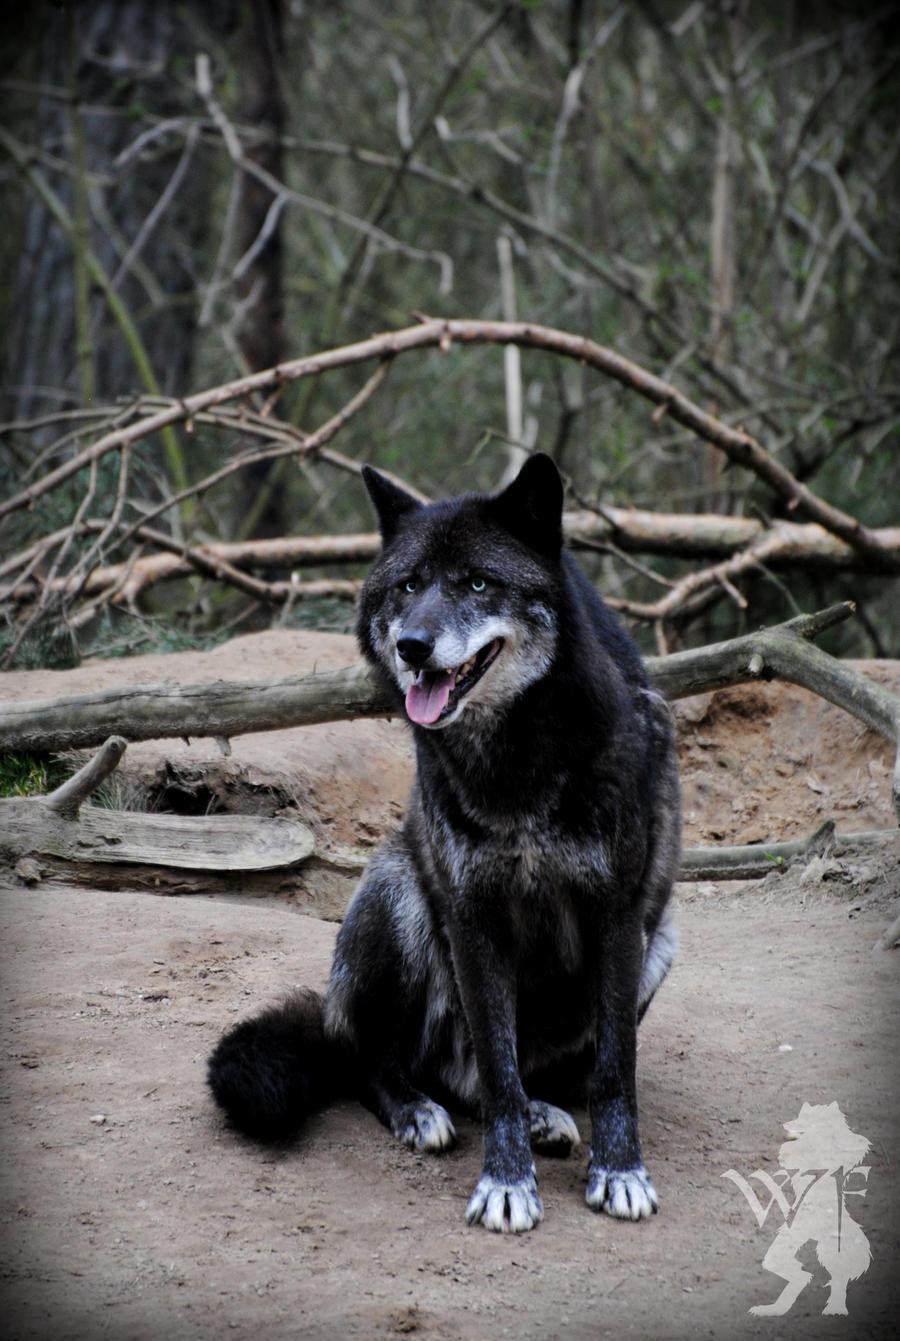 Wolf sitting down side view - photo#26